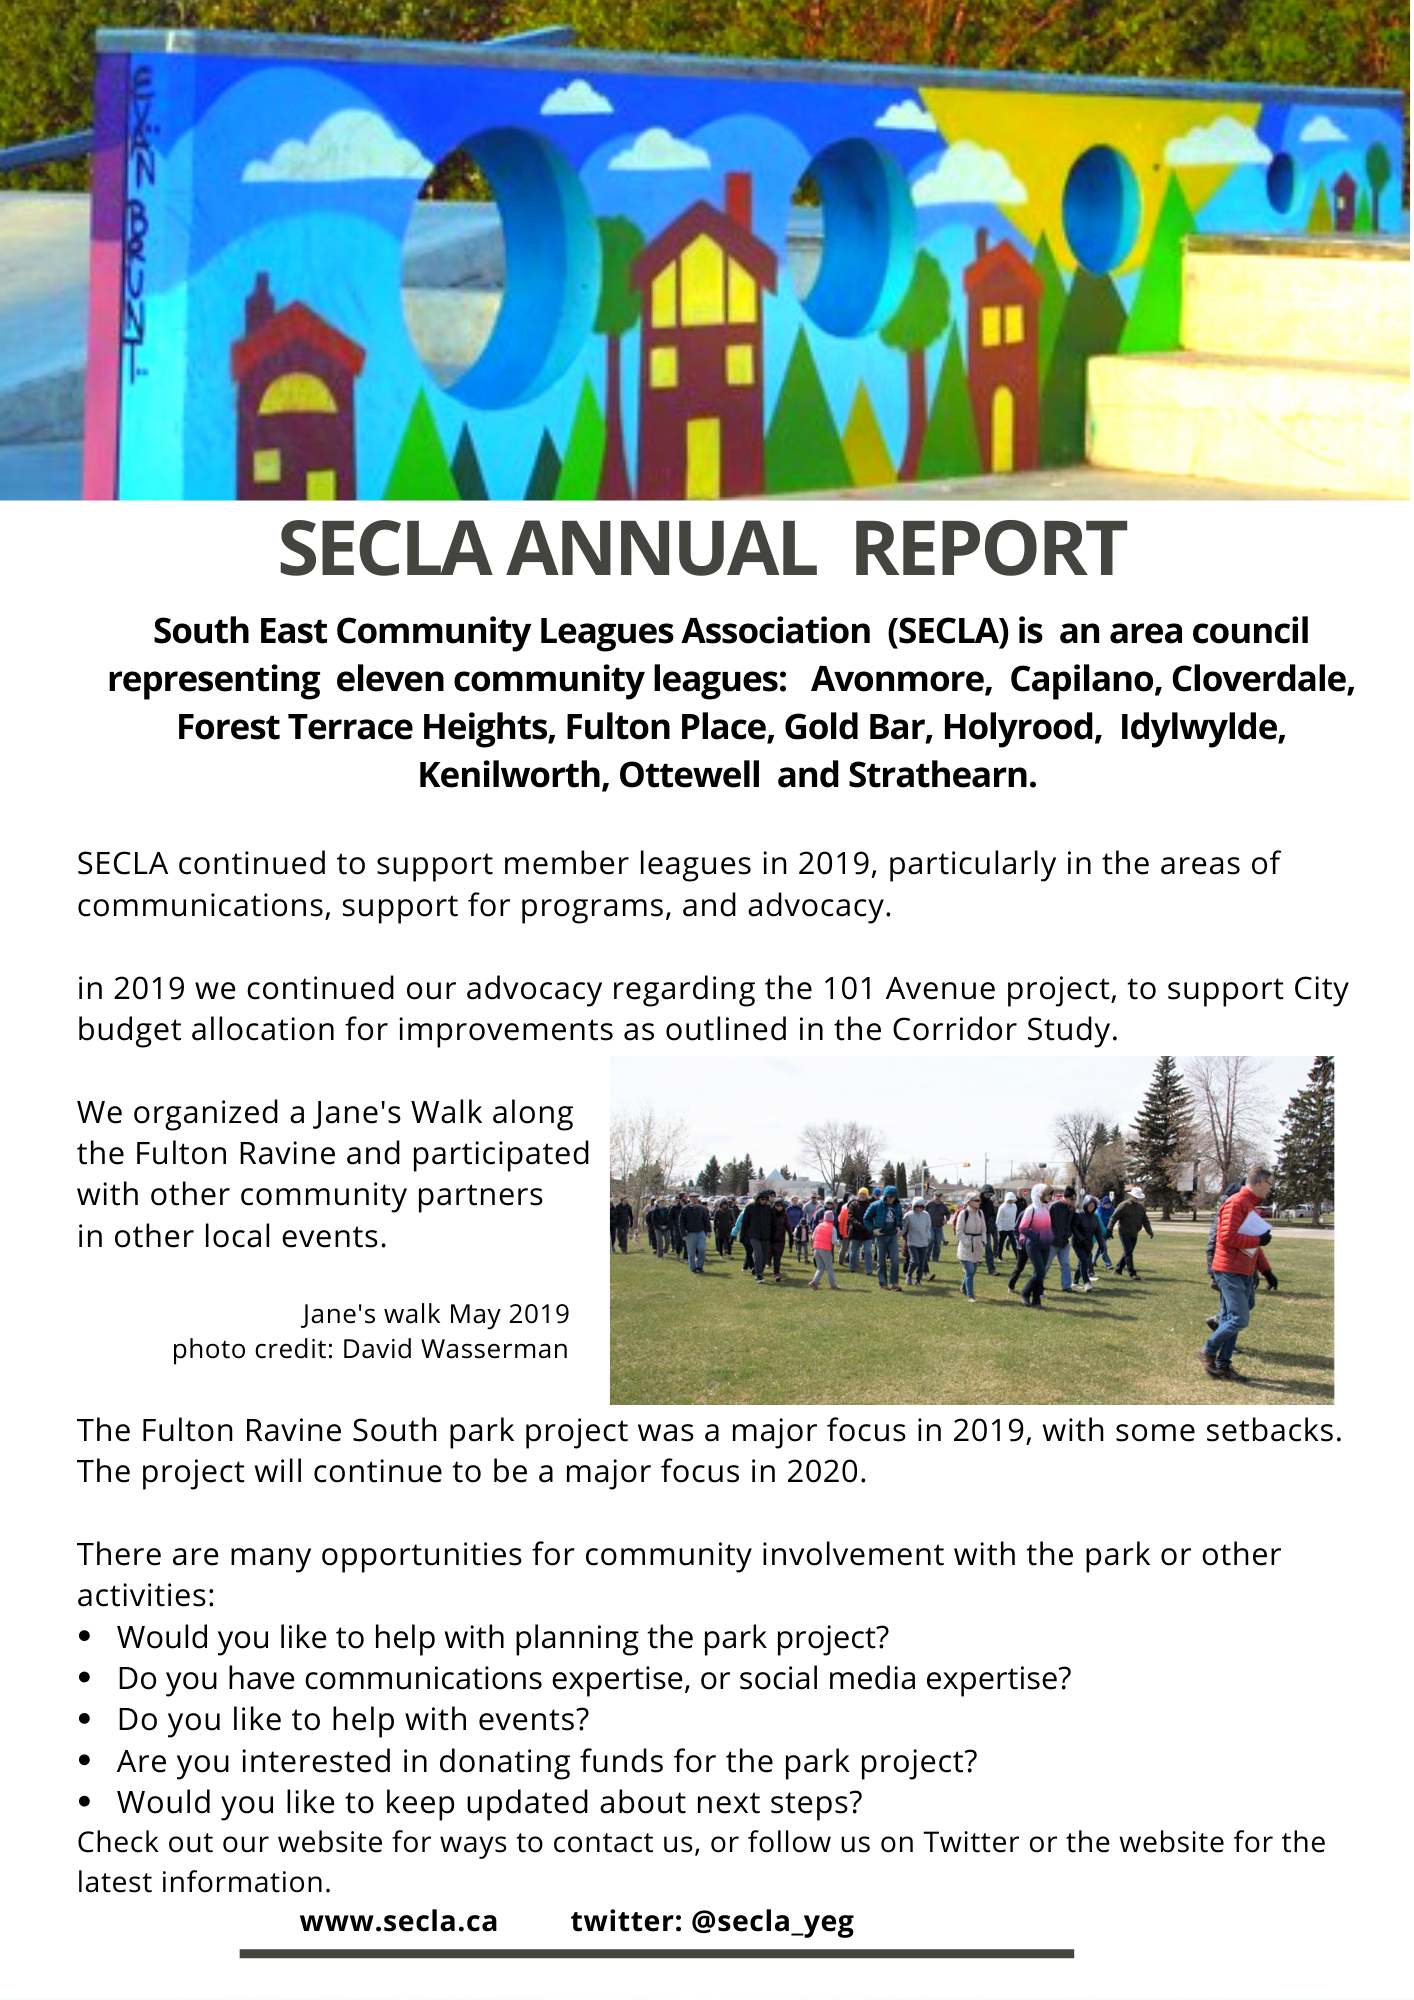 SECLA annual report 2019 page 1